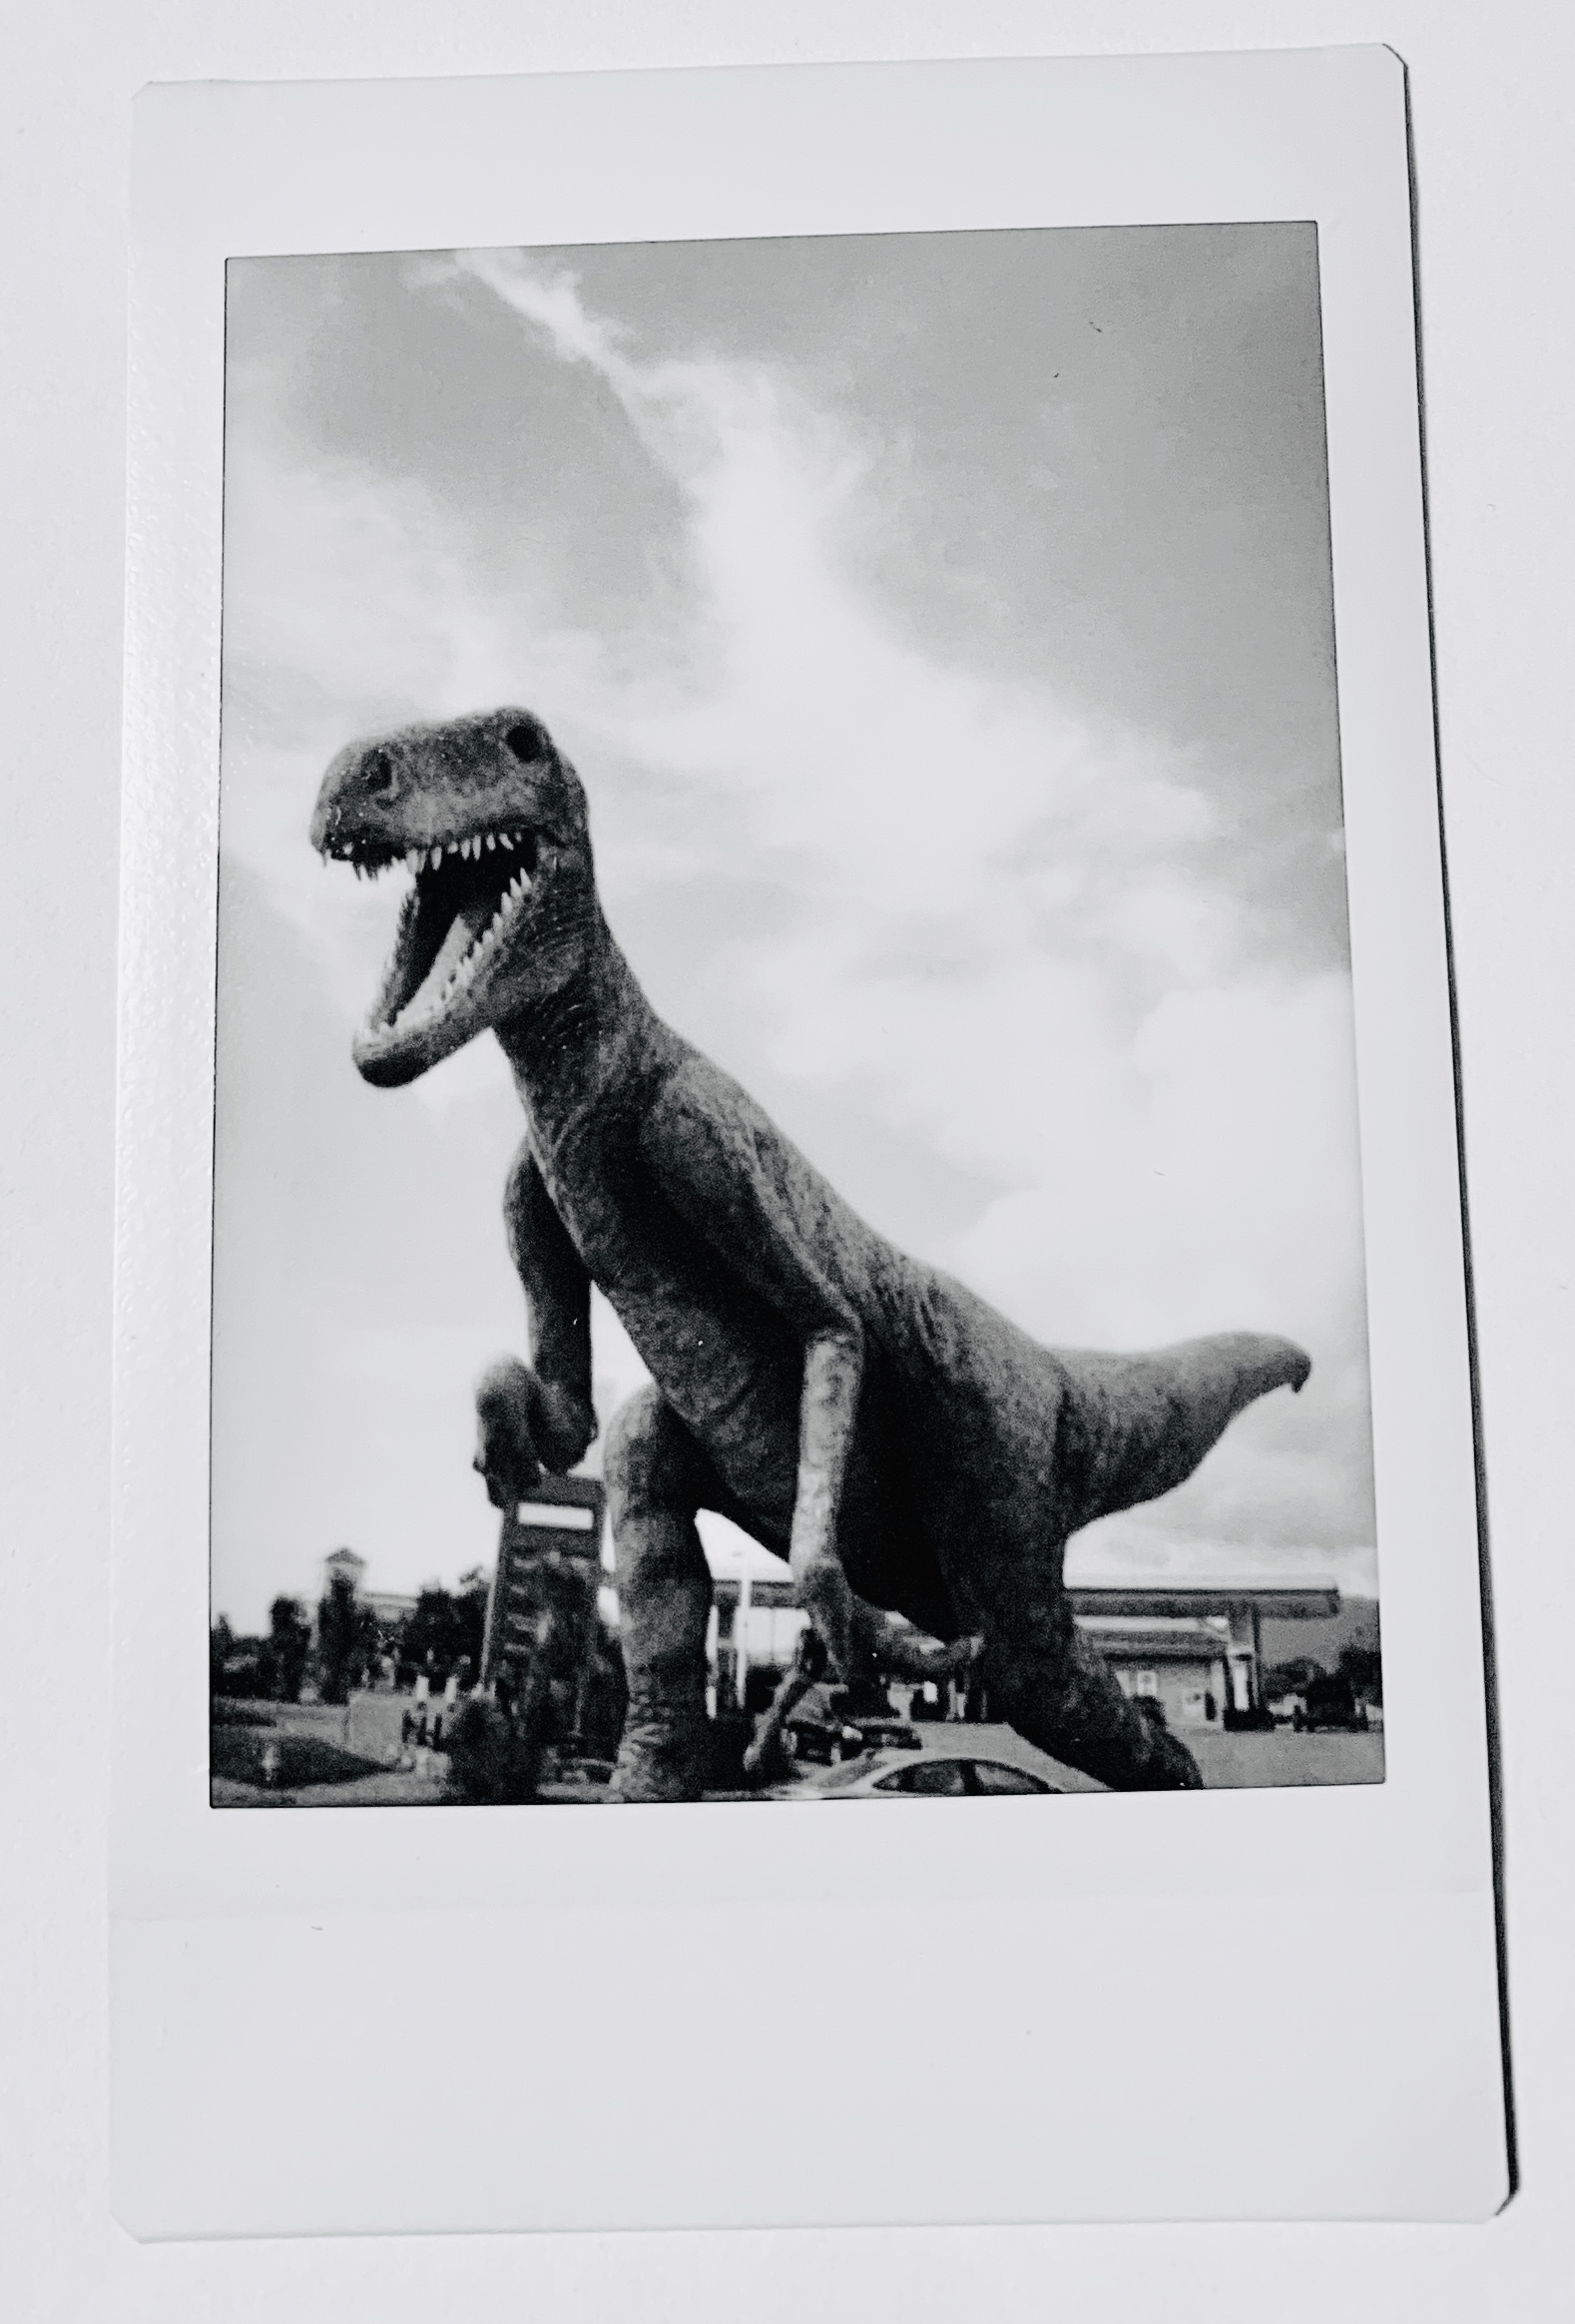 Dinosaur somewhere in New Mexico. Not sure where anymore. It was on a drive back from Tucson, AZ.